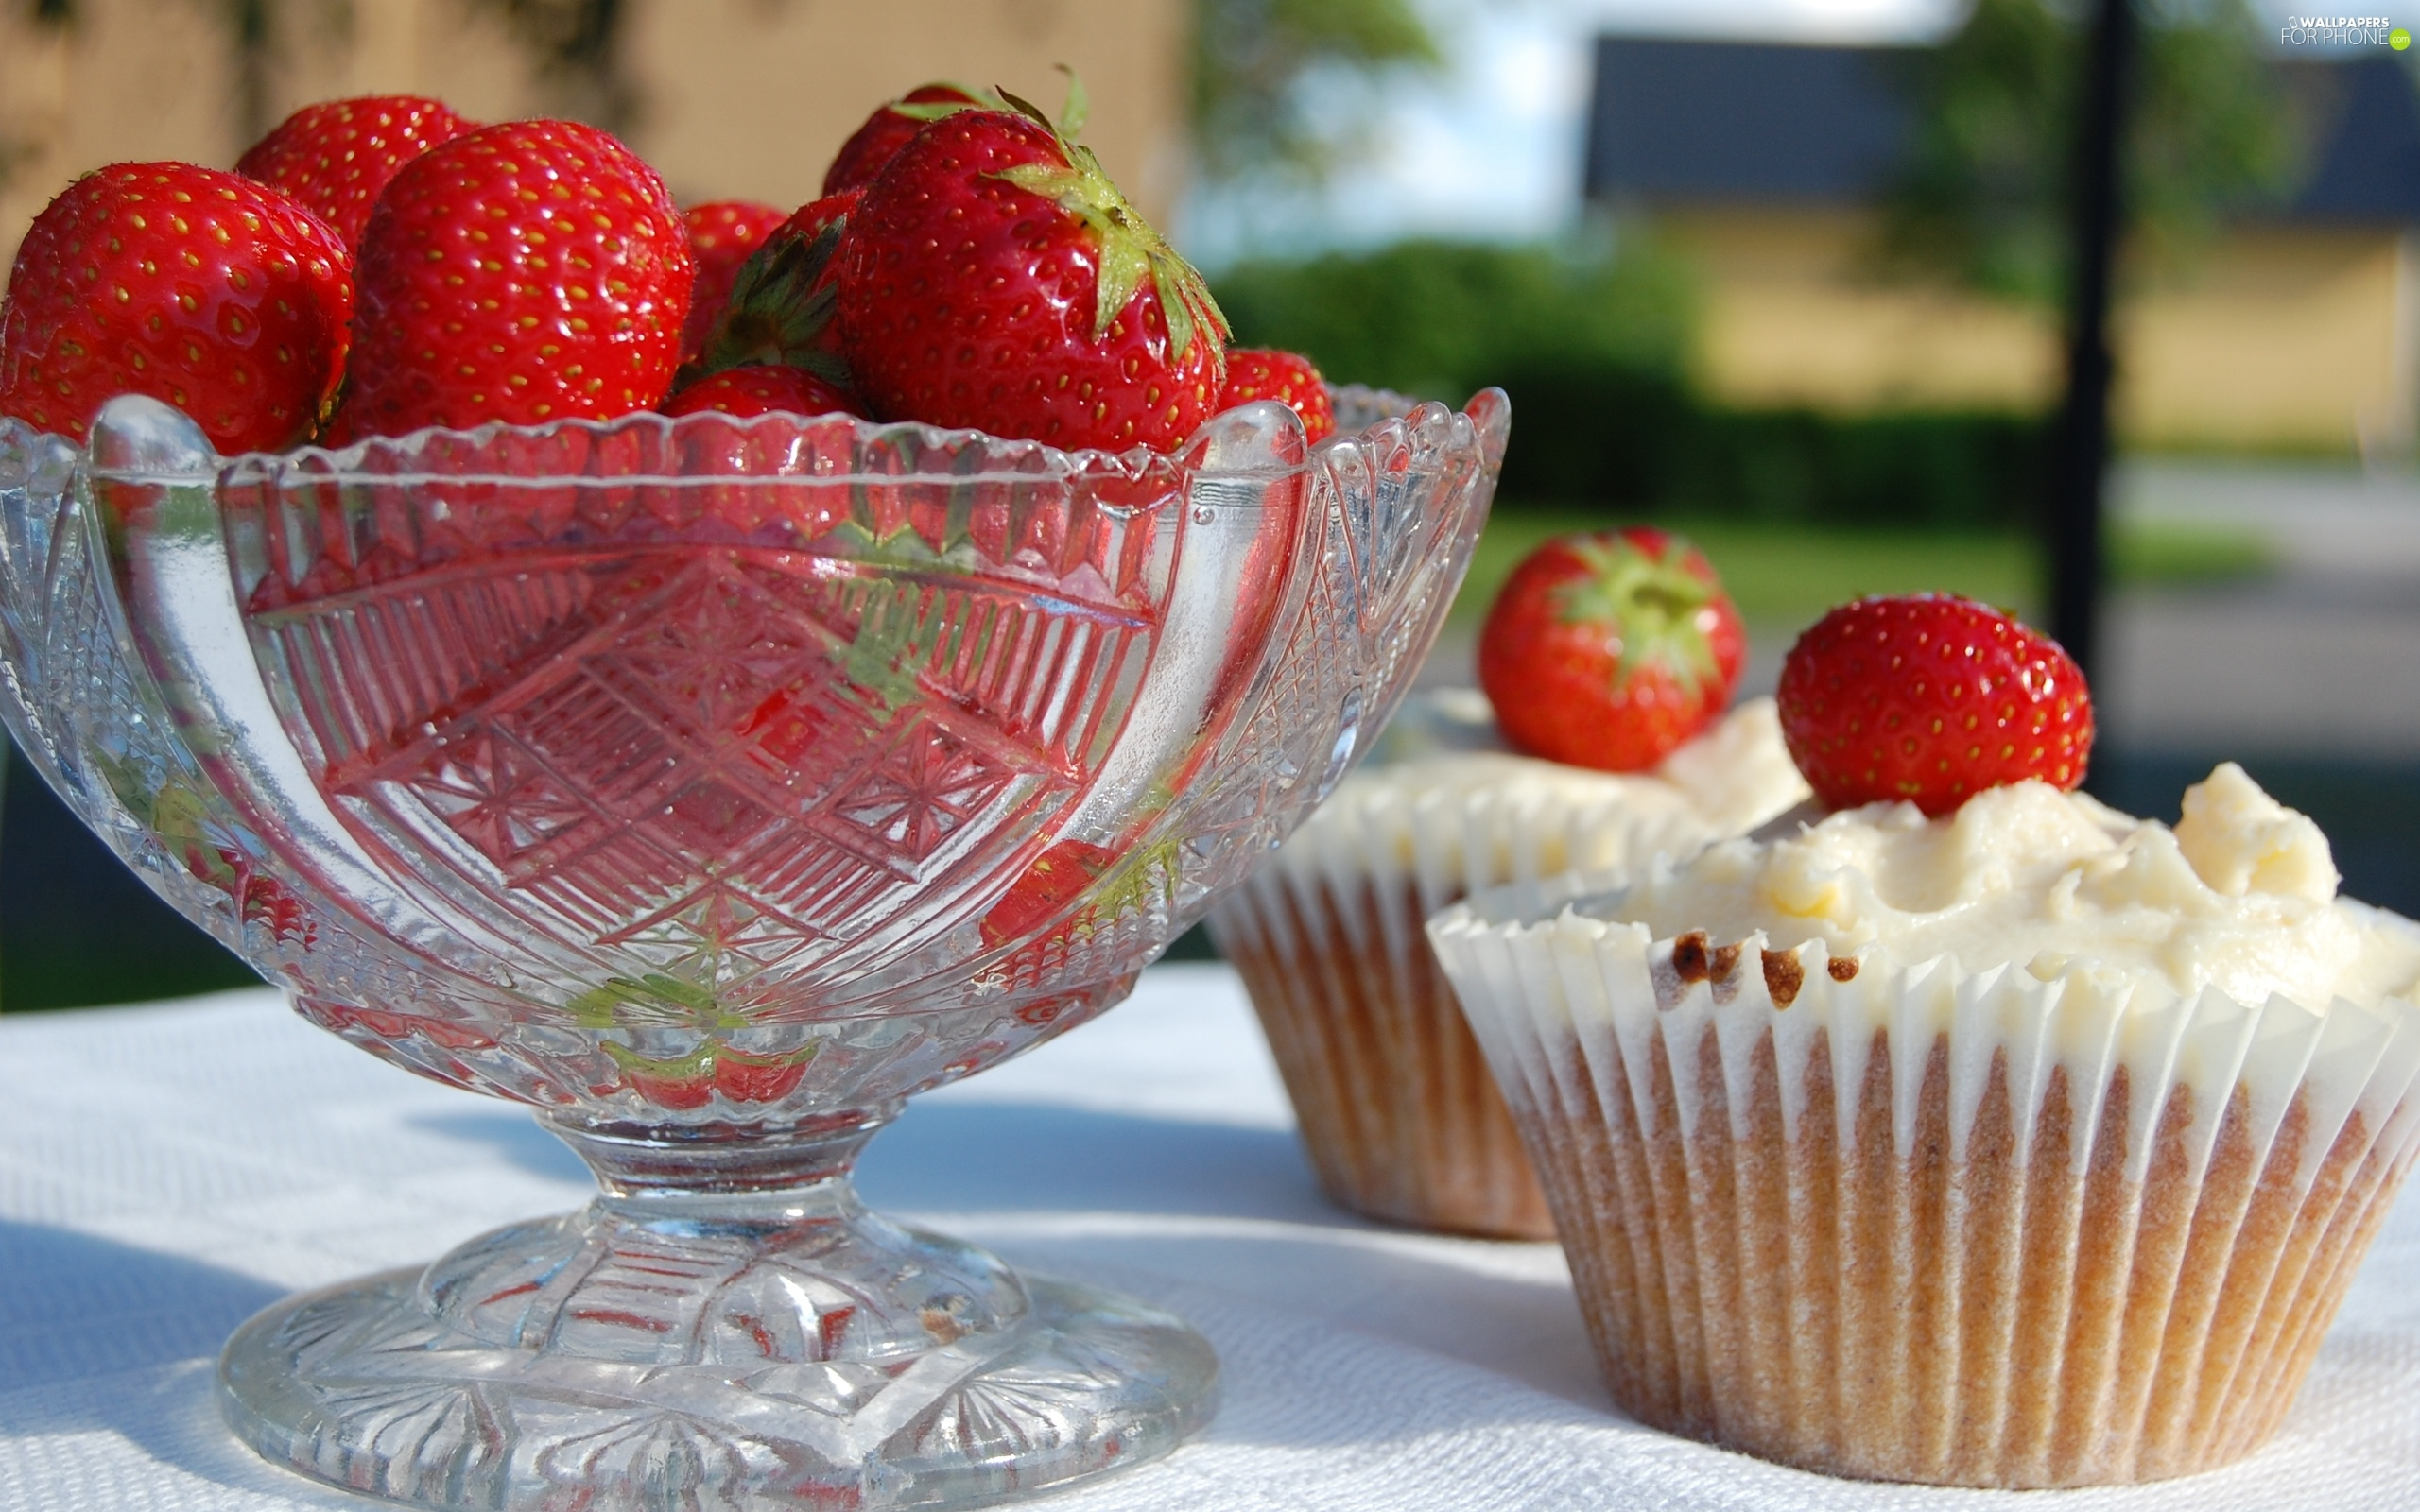 crystal, strawberries, Muffins, Bowl